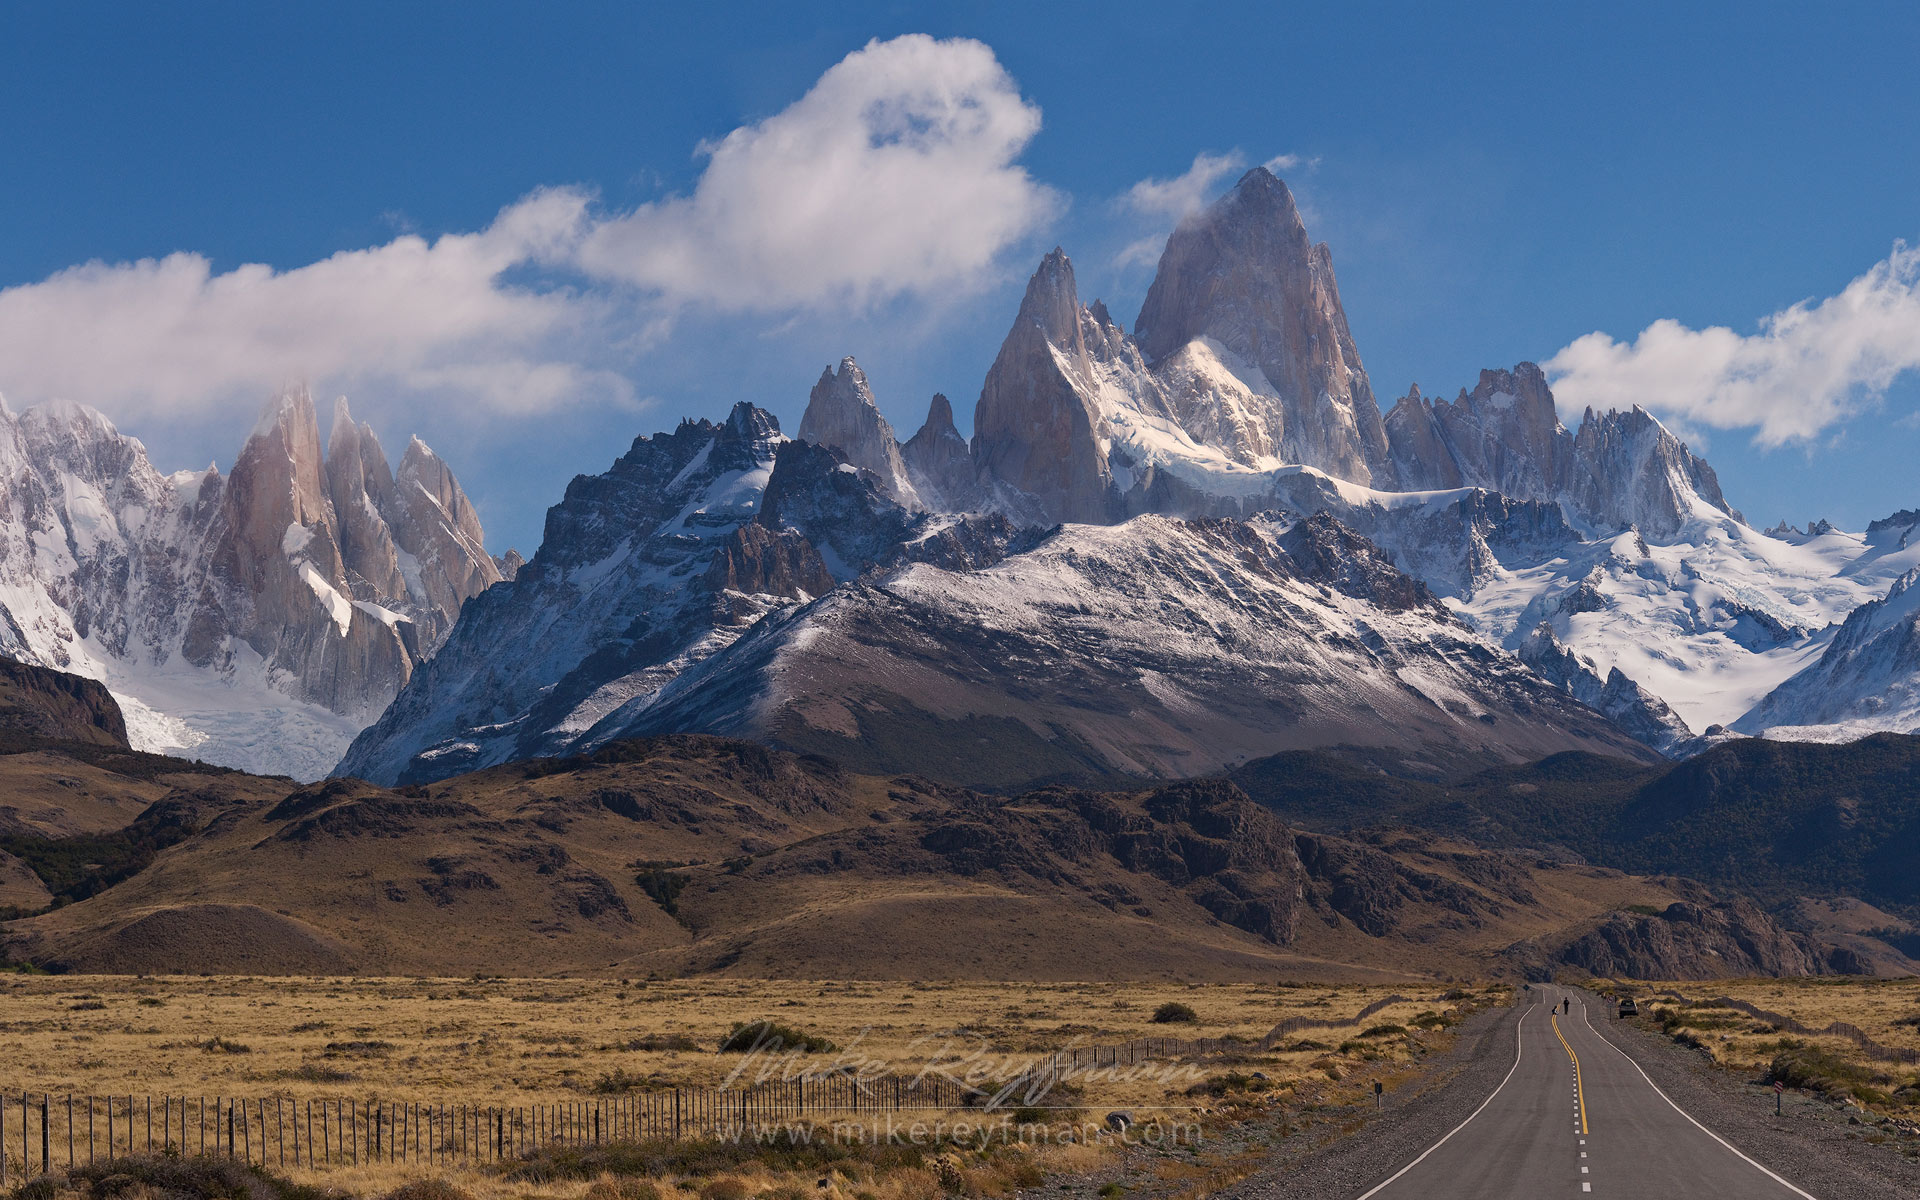 Road to the Mountains. Fitzroy and Cerro Torre Massifs from Ruta 40. Santa Cruz, Patagonia, Argentina.  - Fitzroy-Cerro-Torre-Perito-Moreno-Patagonia-Argentina - Mike Reyfman Photography